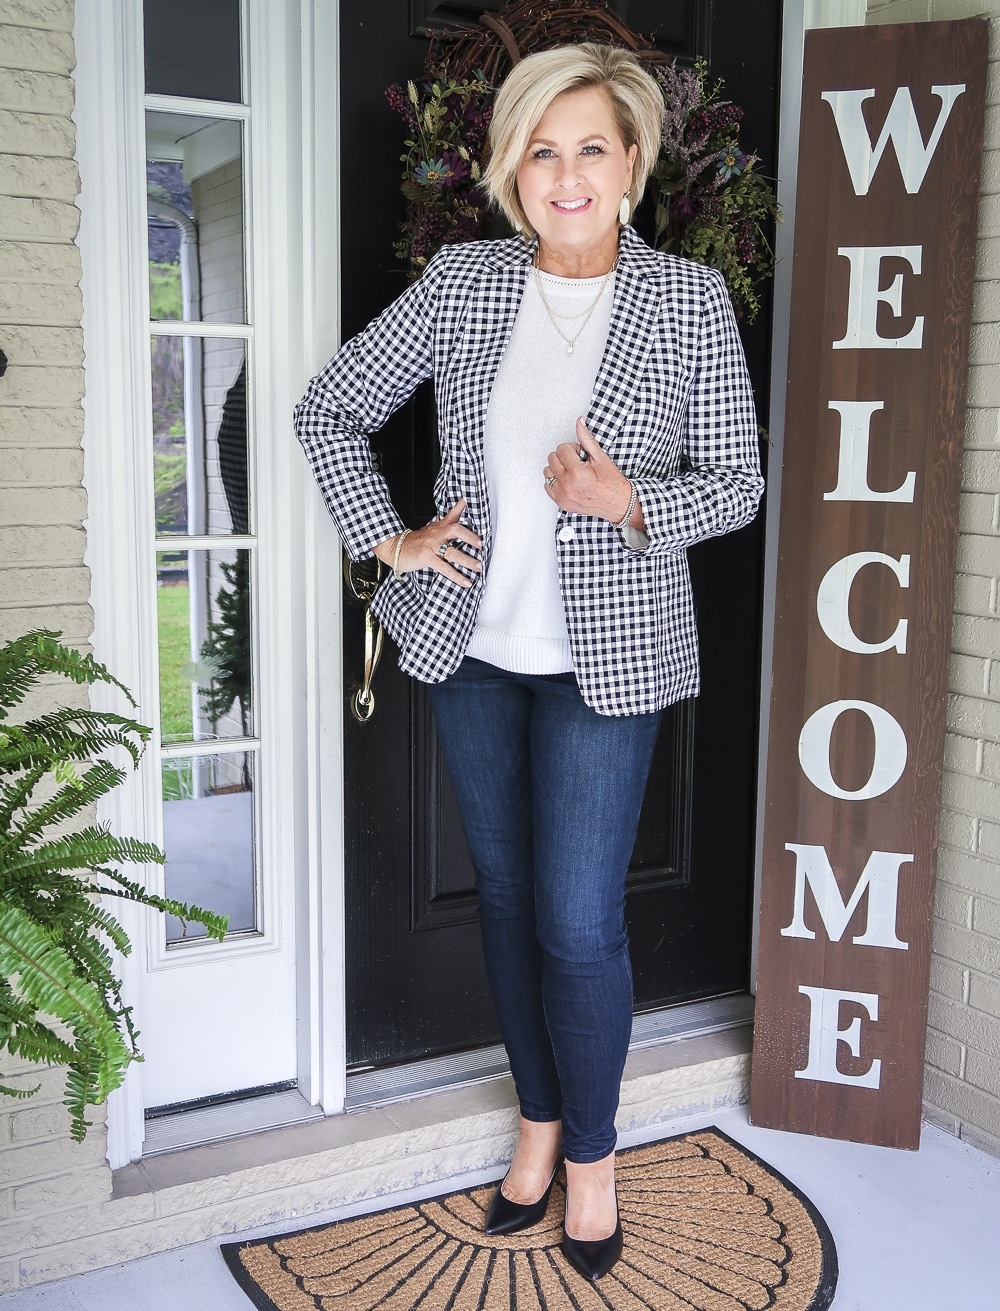 Fashion Blogger 50 Is Not Old is wearing a white sweater and a black and white gingham blazer with skinny jeans and black pumps